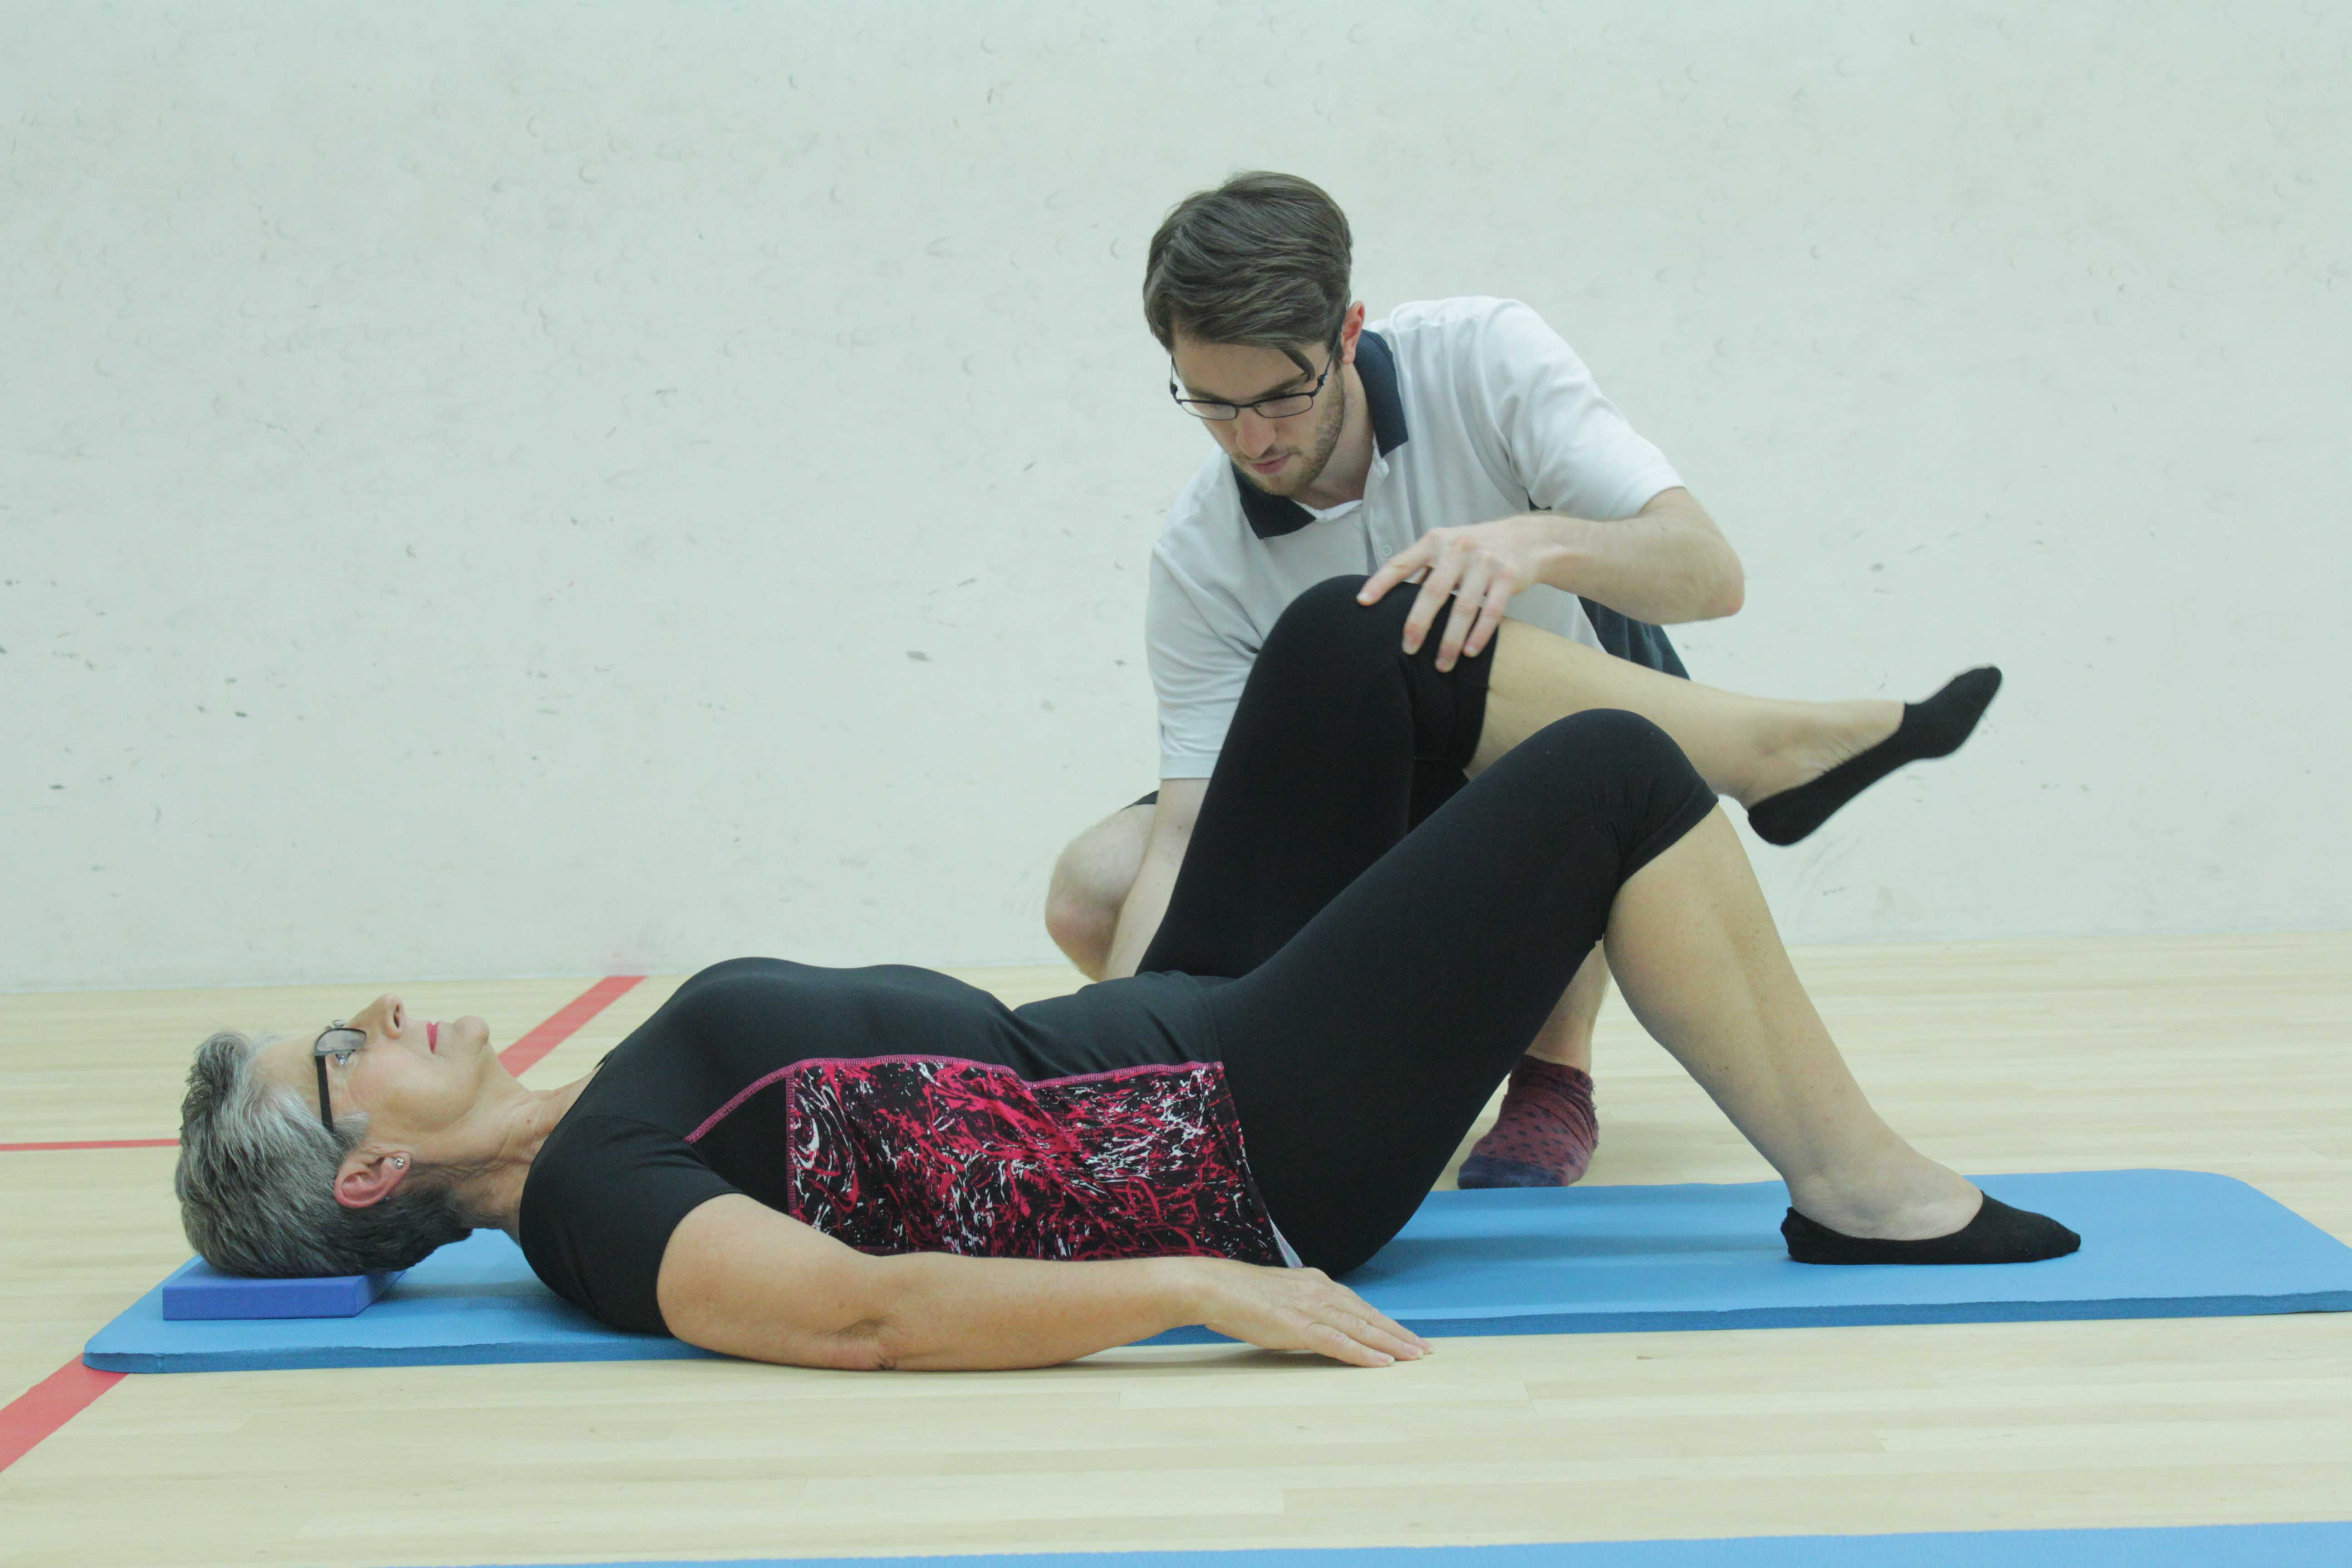 Our strengthening exercises can be adapted to suit your individual needs